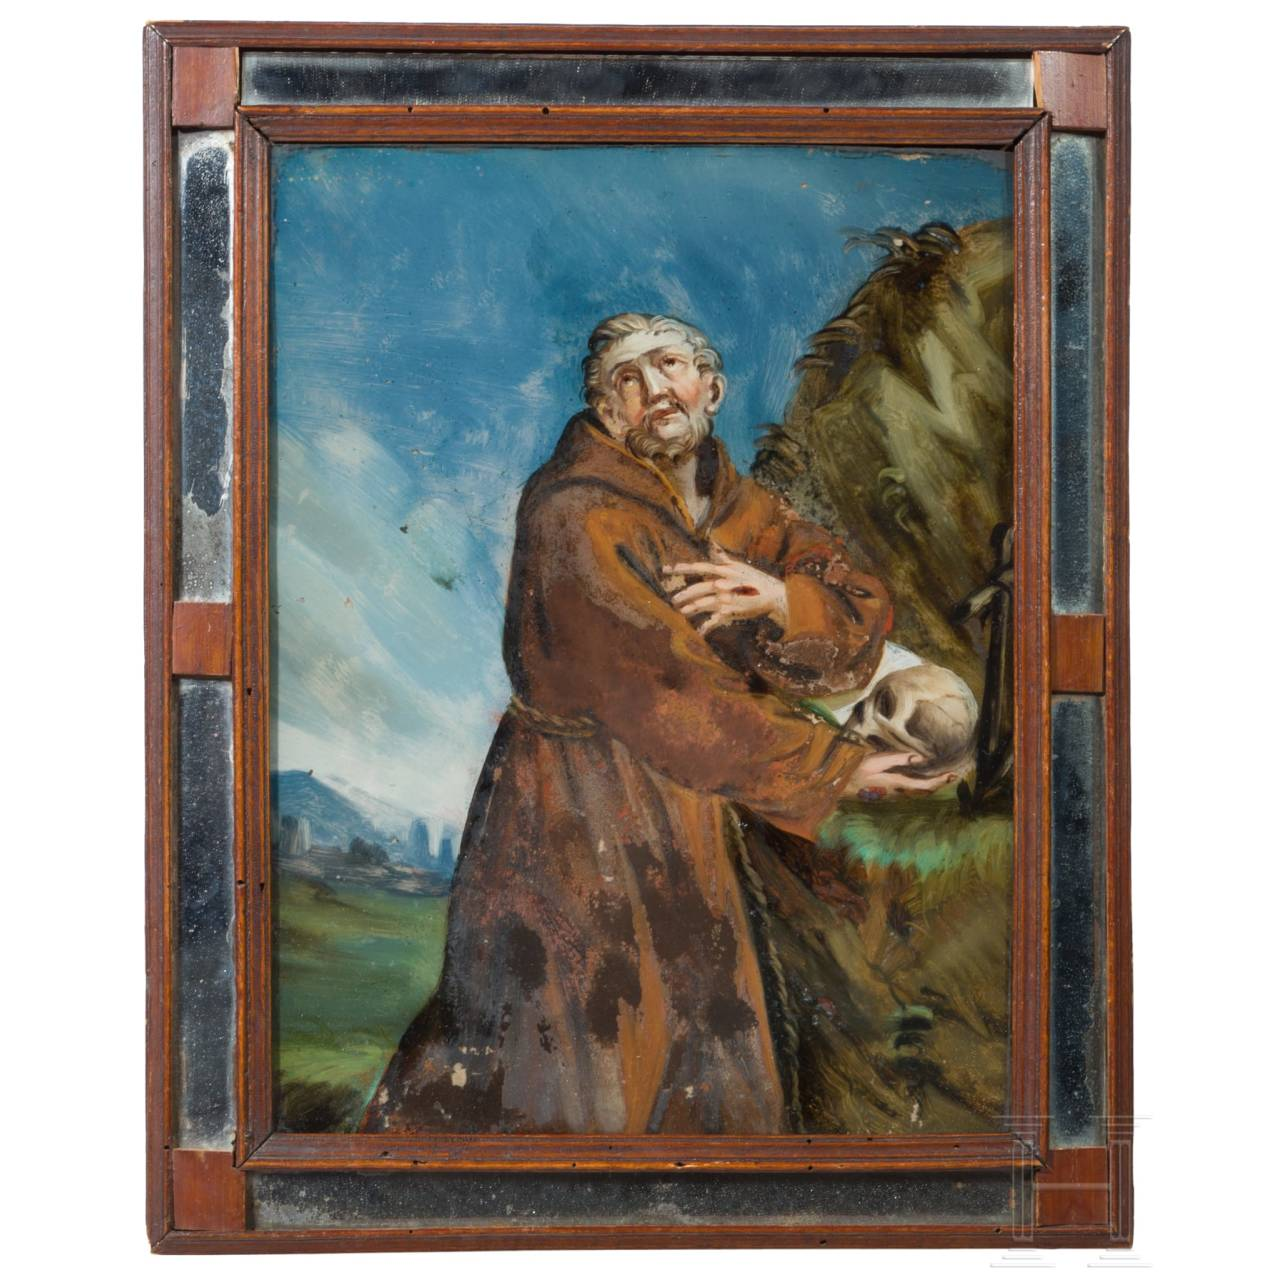 A reverse glass painting with St. Francis, Augsburg, 18th century